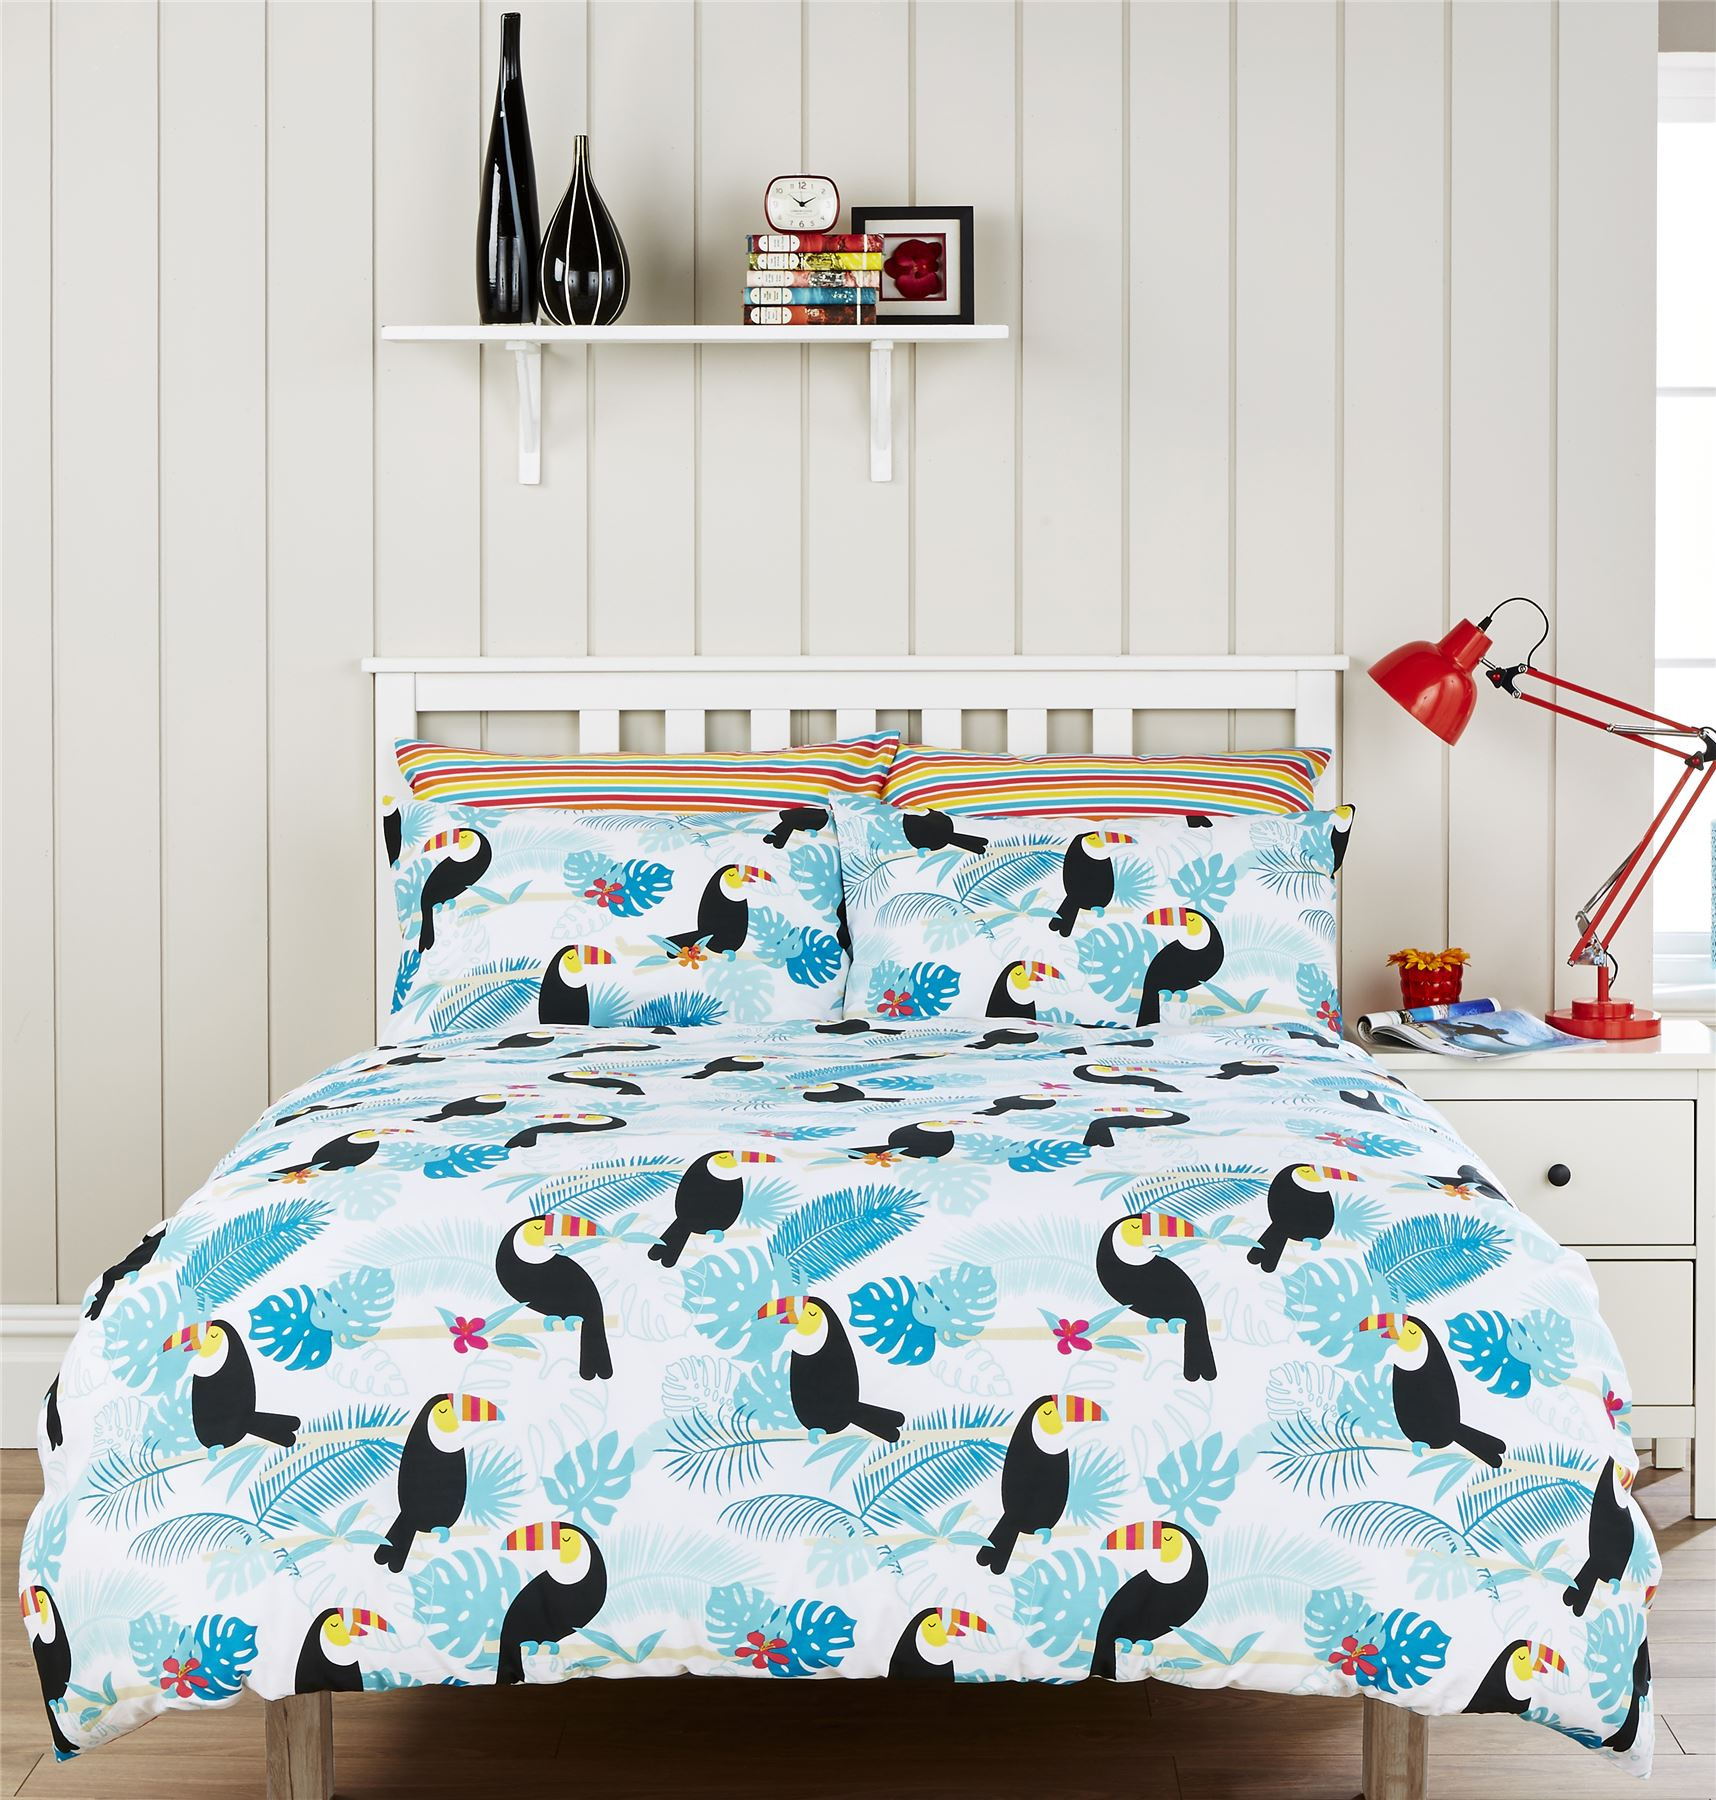 Hummingbird Bed Linen Part - 36: Humming Bird Toucan Multi Reversible Duvet Cover Set